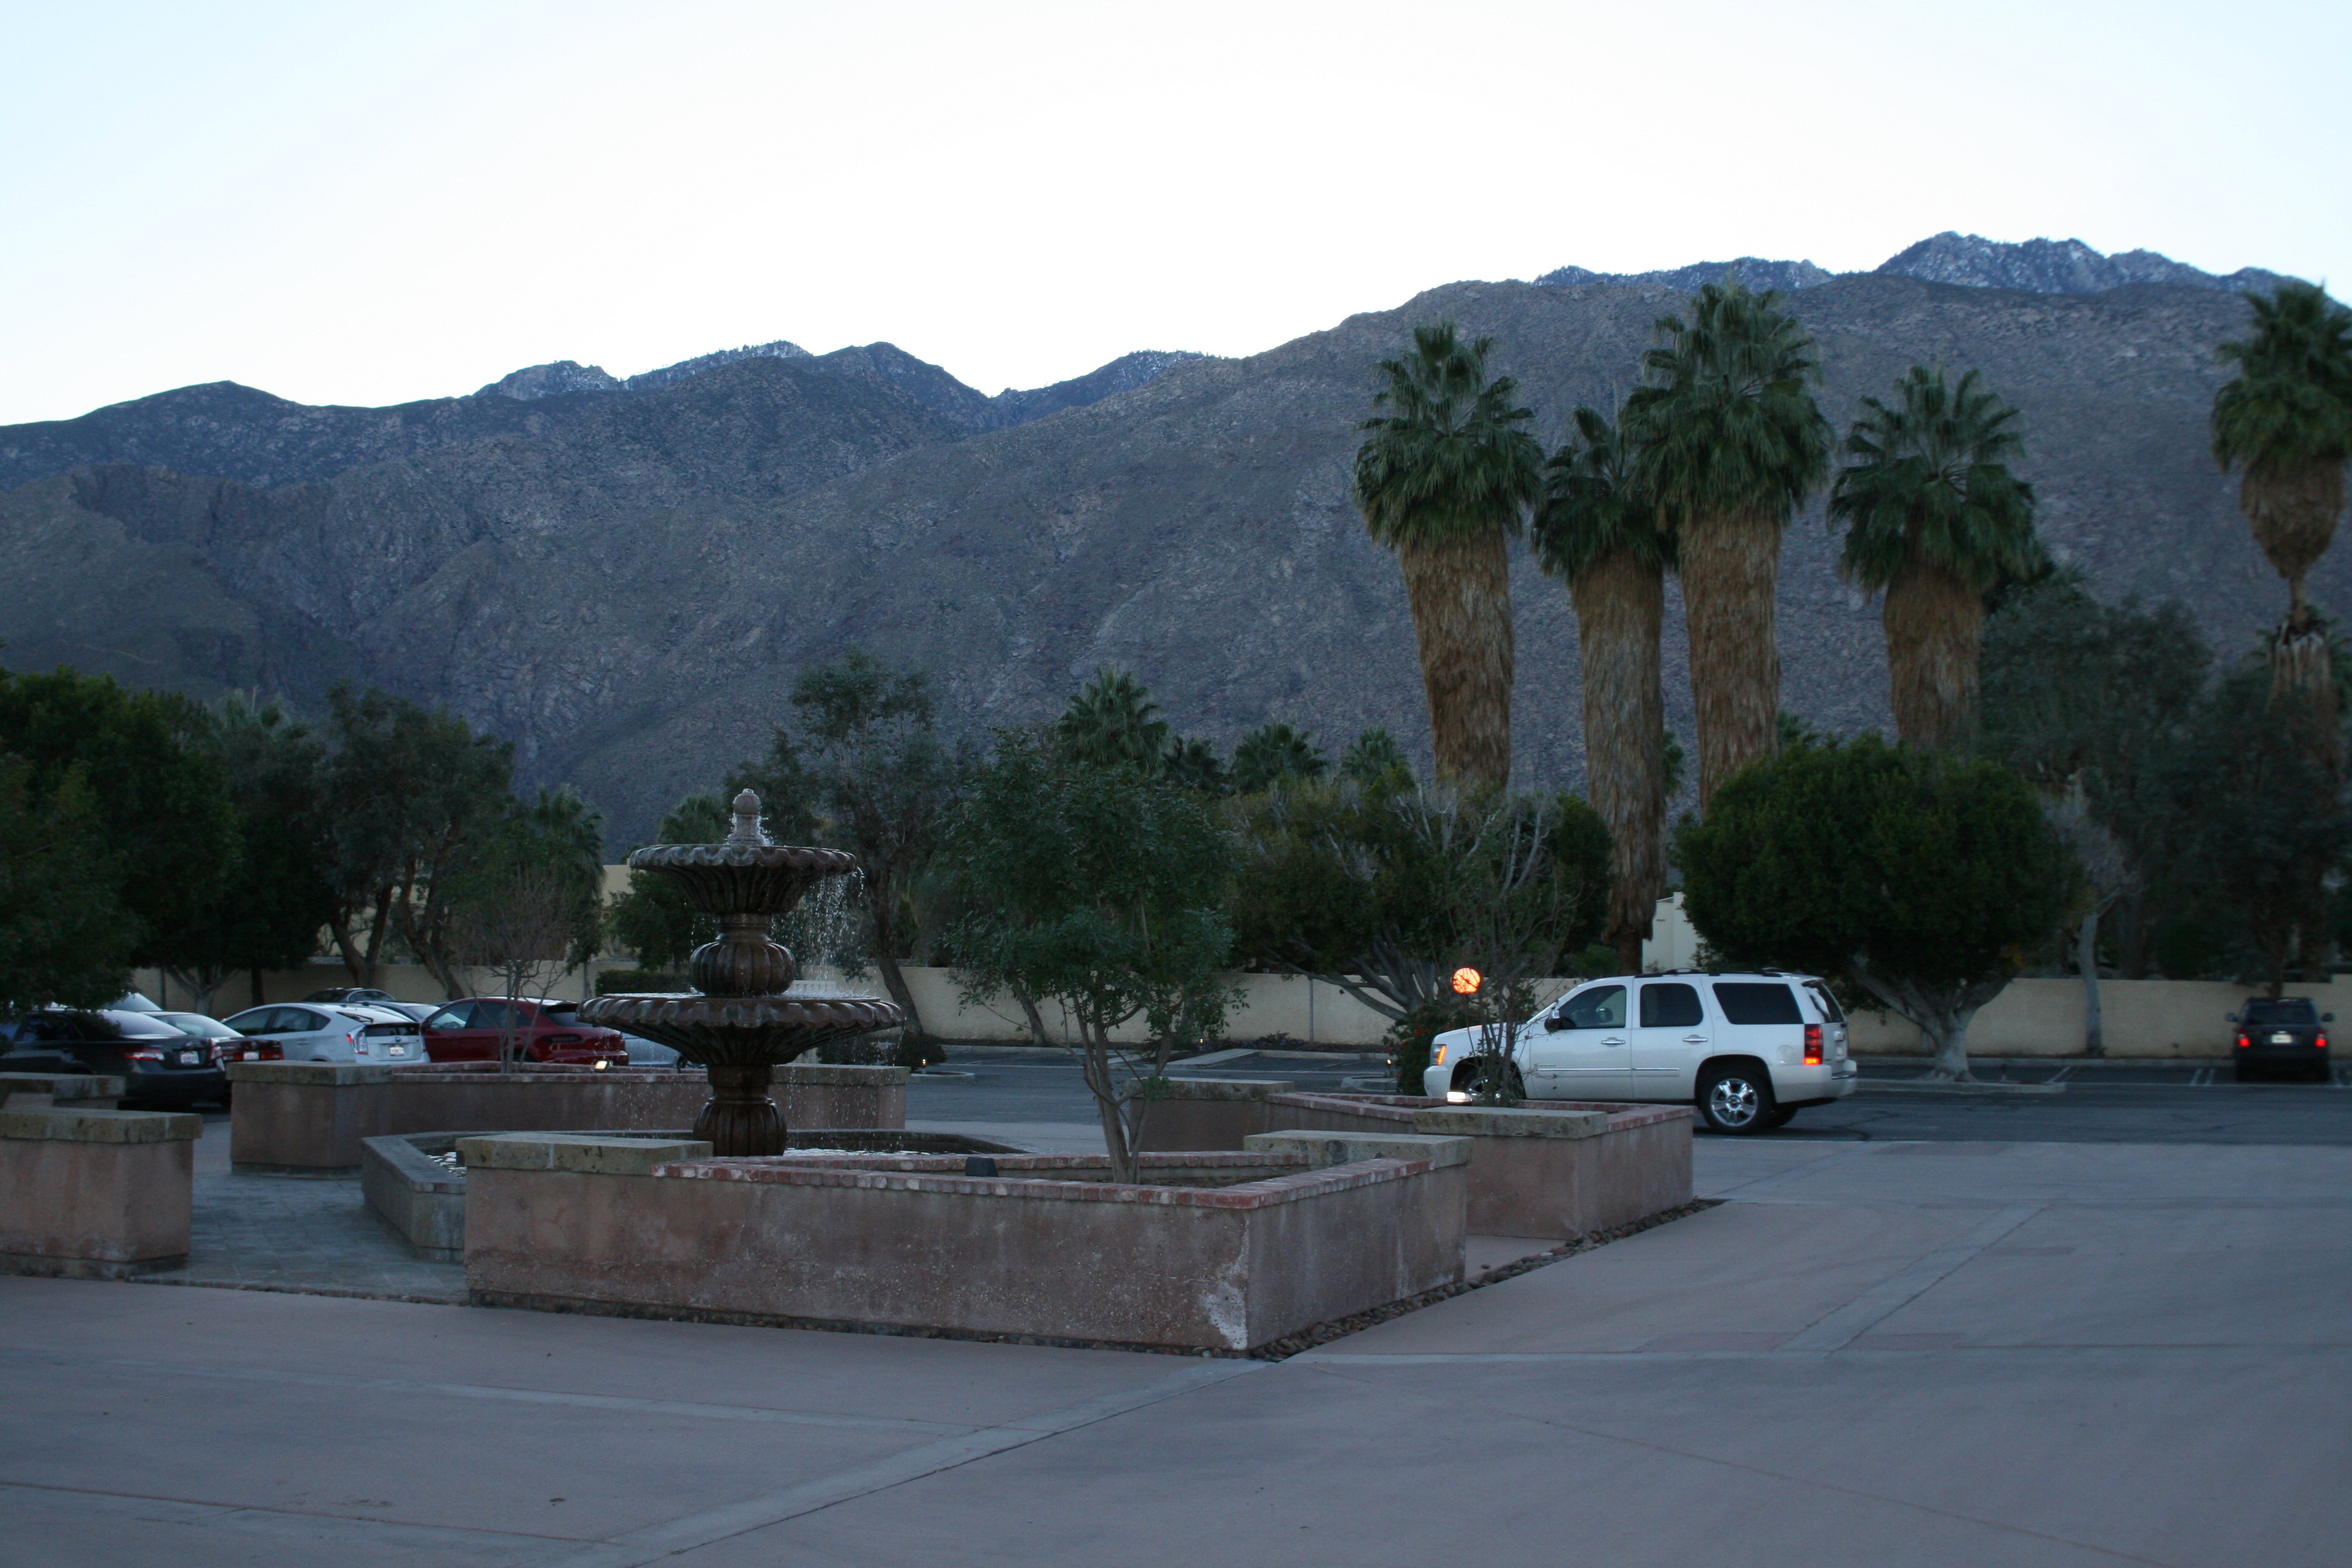 Palm Springs sleep center - Advanced Sleep Medicine Services - Parking lot